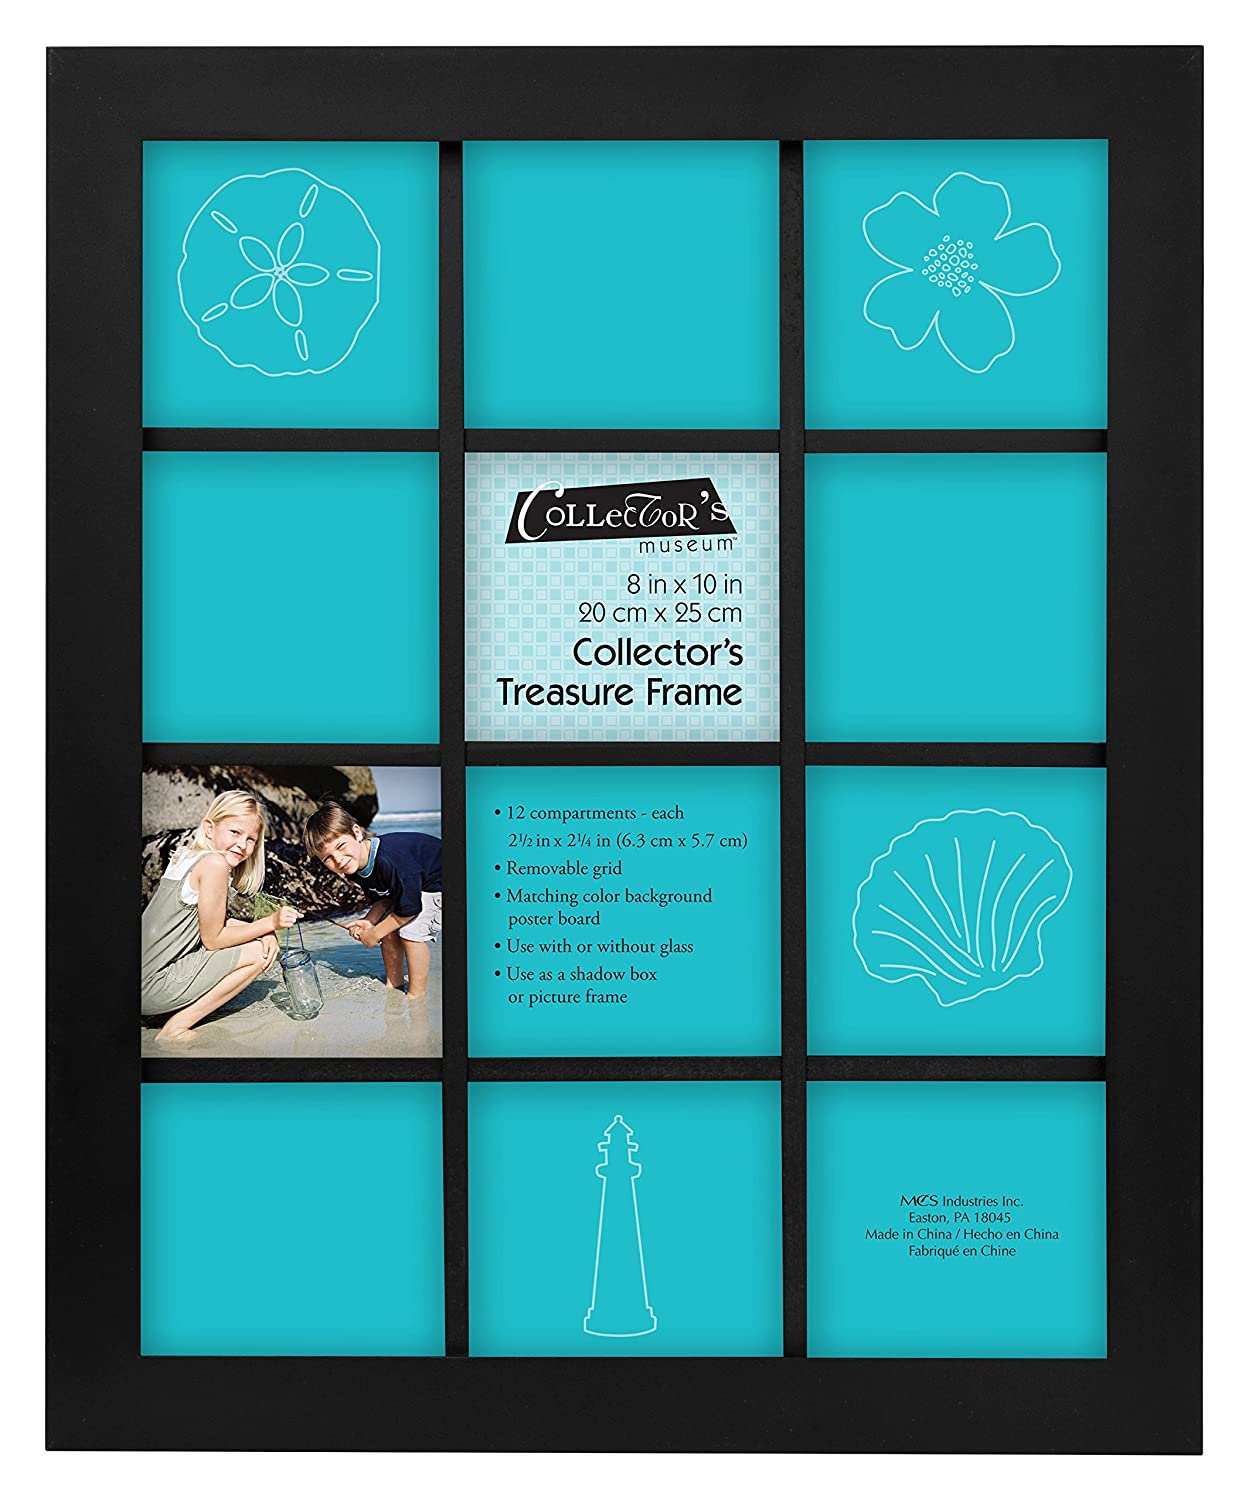 MCS Collectors Treasure Frame 8x10 with 12 Compartments 52740